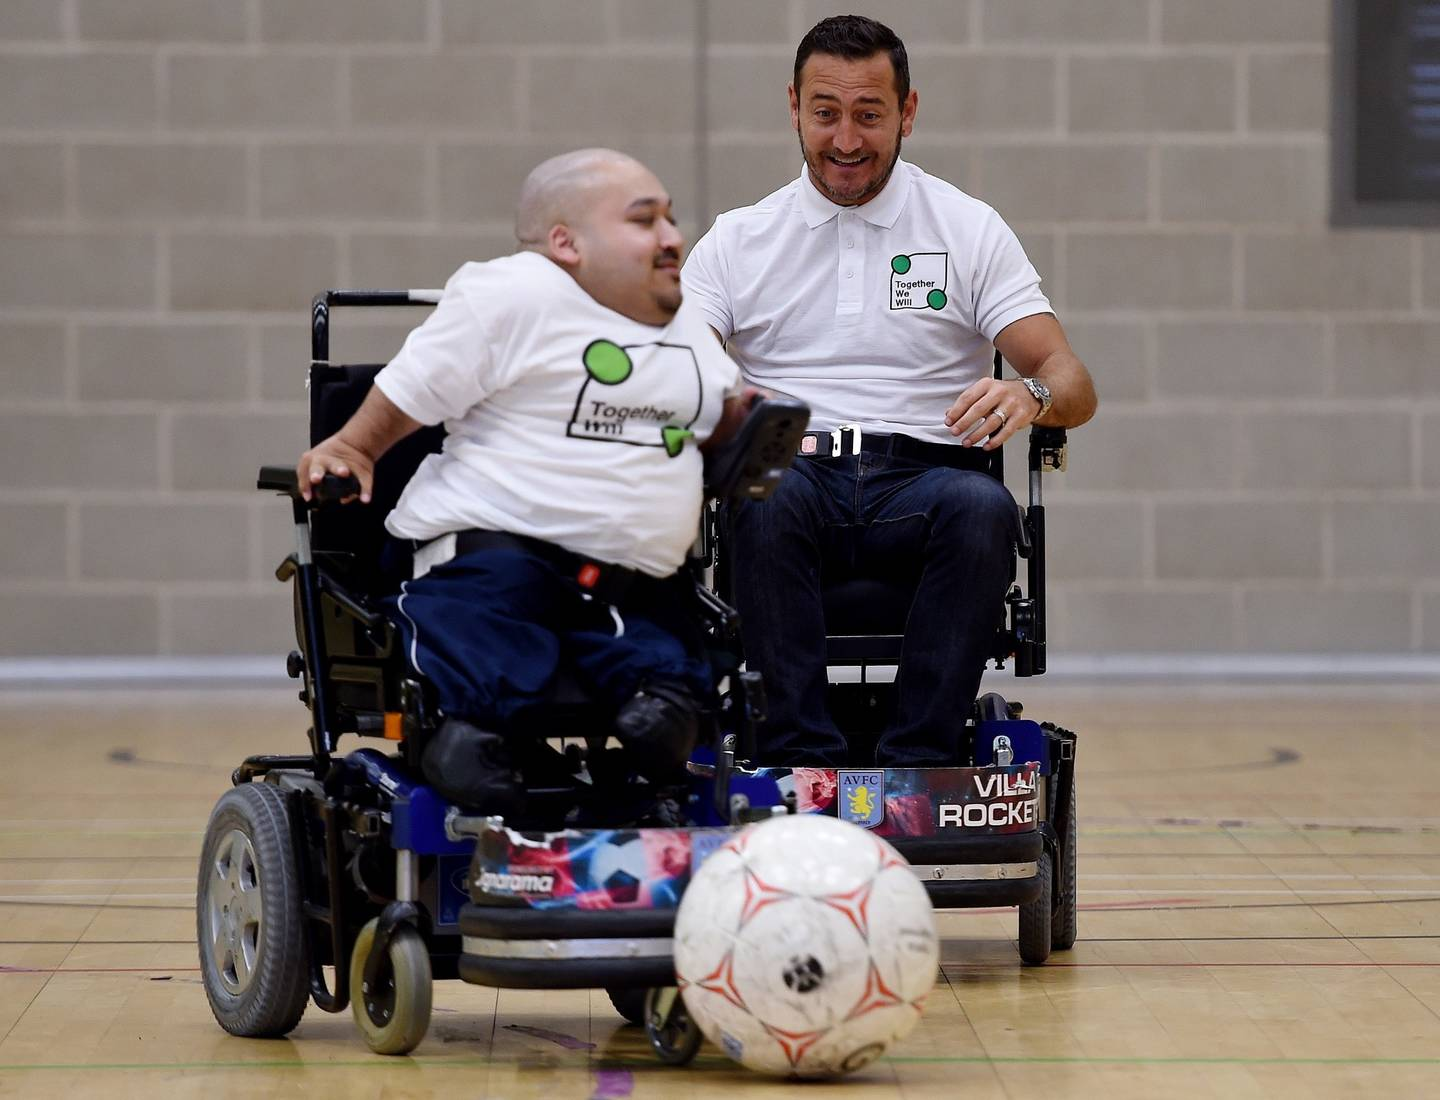 Image shows Amir Ali and Will Mellor playing powerchair football.